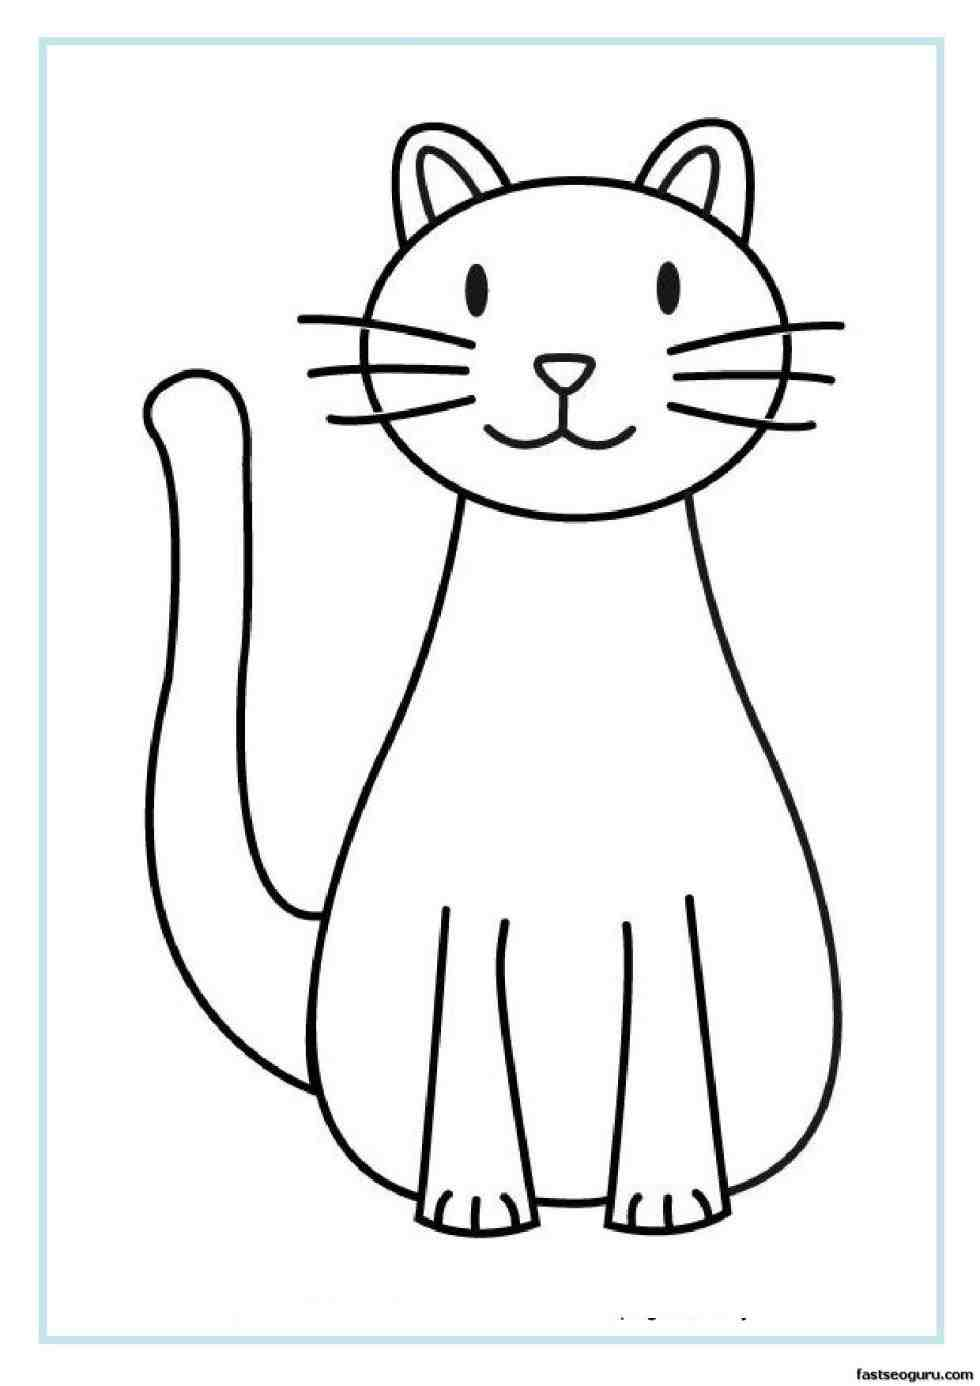 980x1386 Cat Sketch Images For Kids